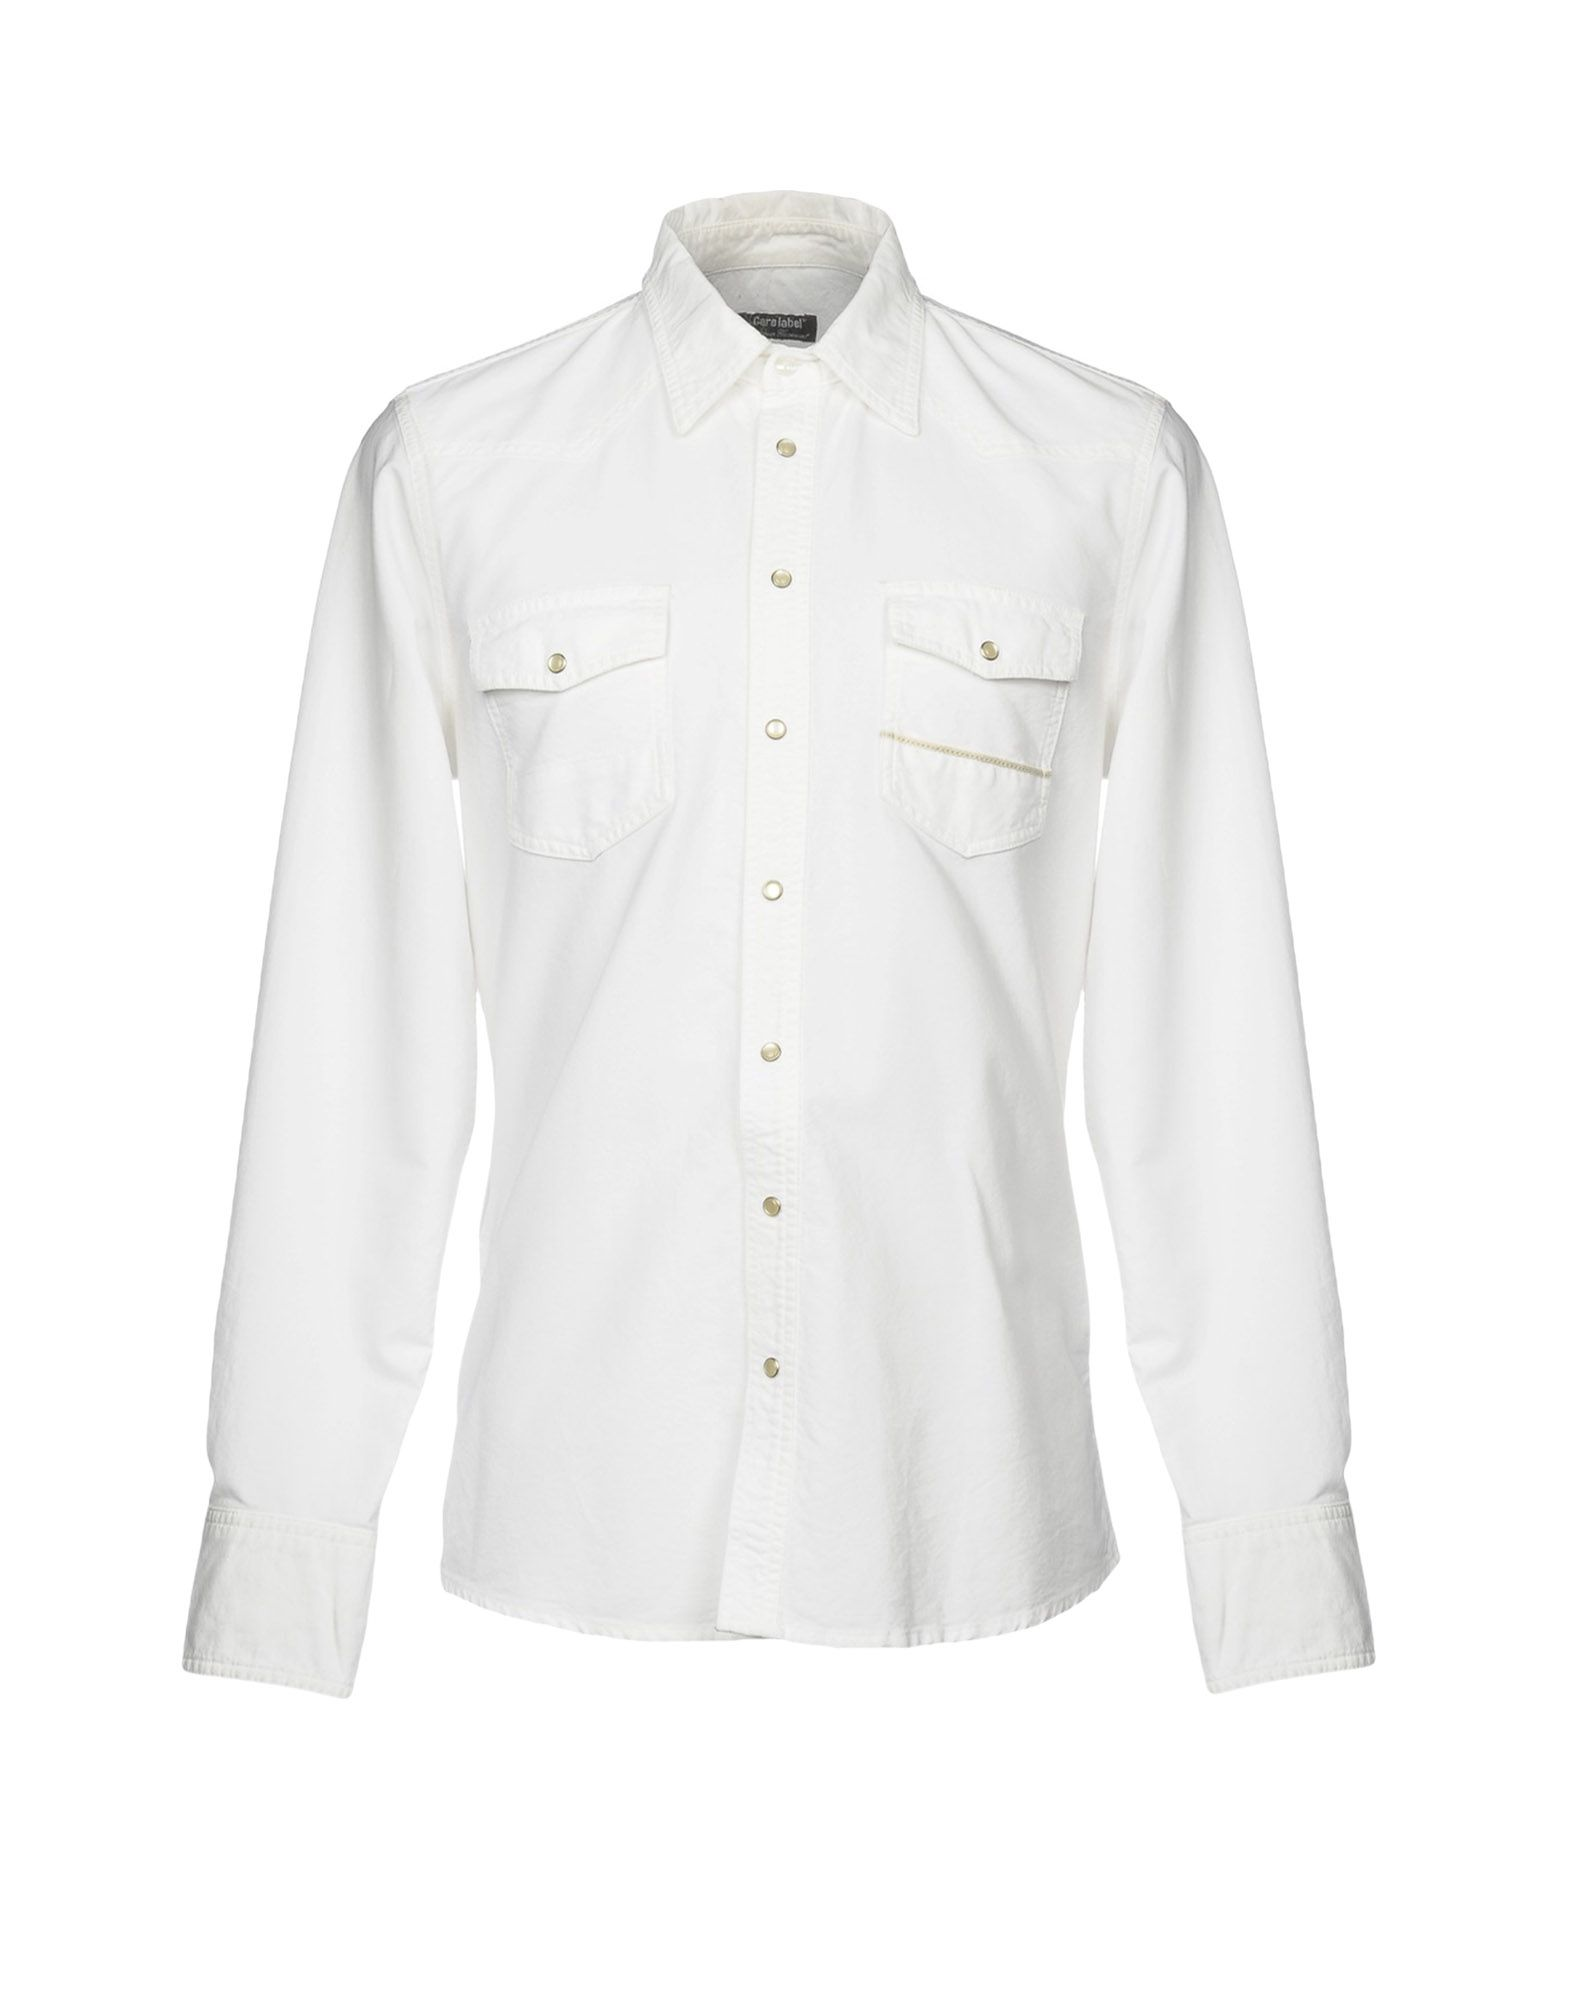 CARE LABEL Solid Color Shirt in White